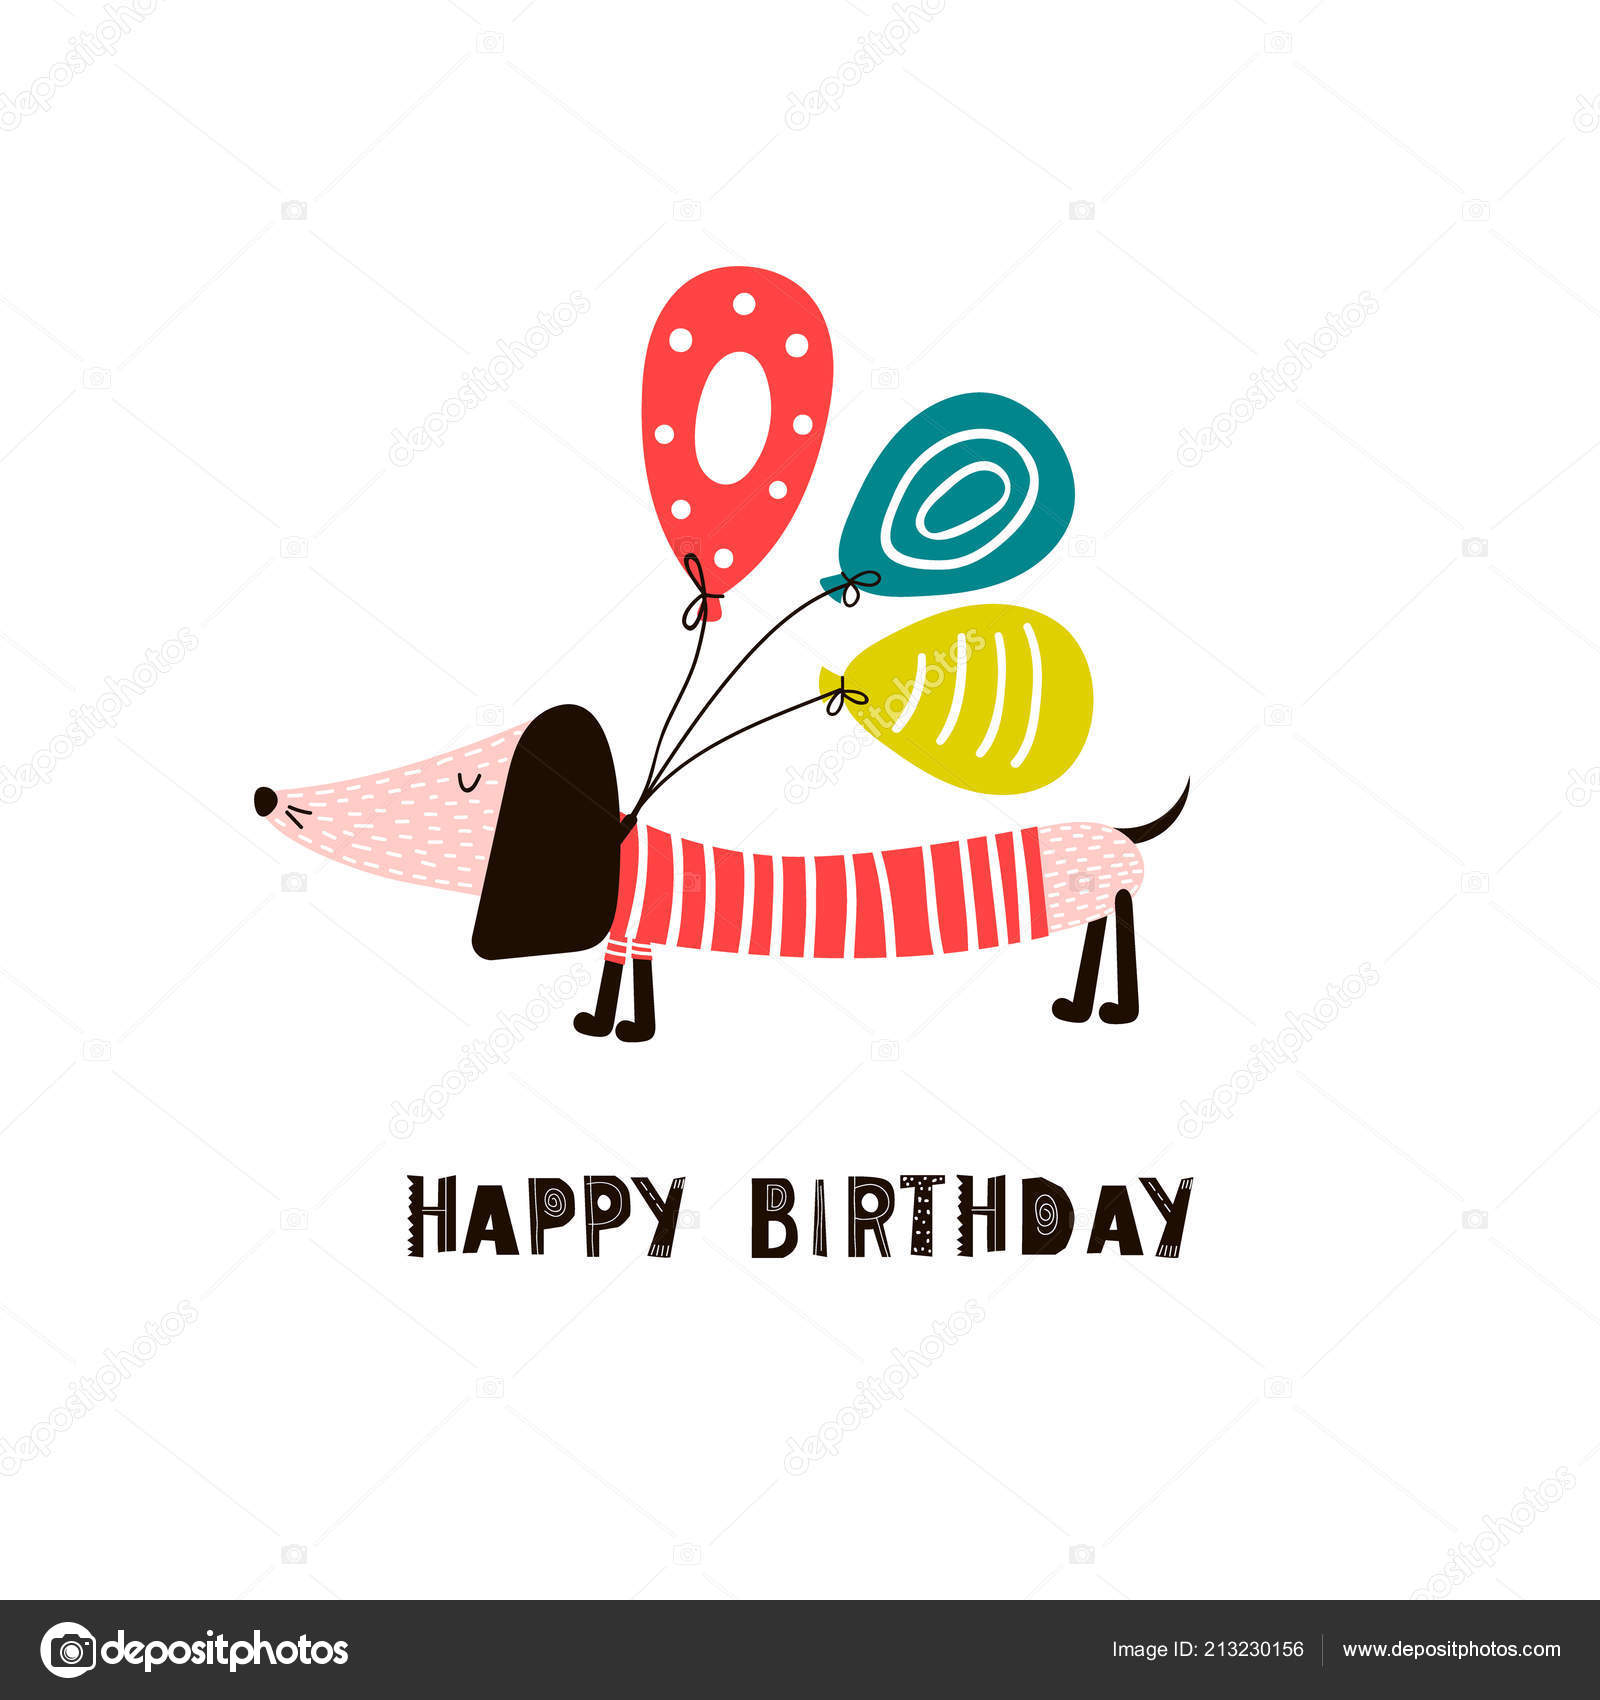 Greeting Card With Cute Dachshund Dog In A Striped Shirt Balloons And An Inscription